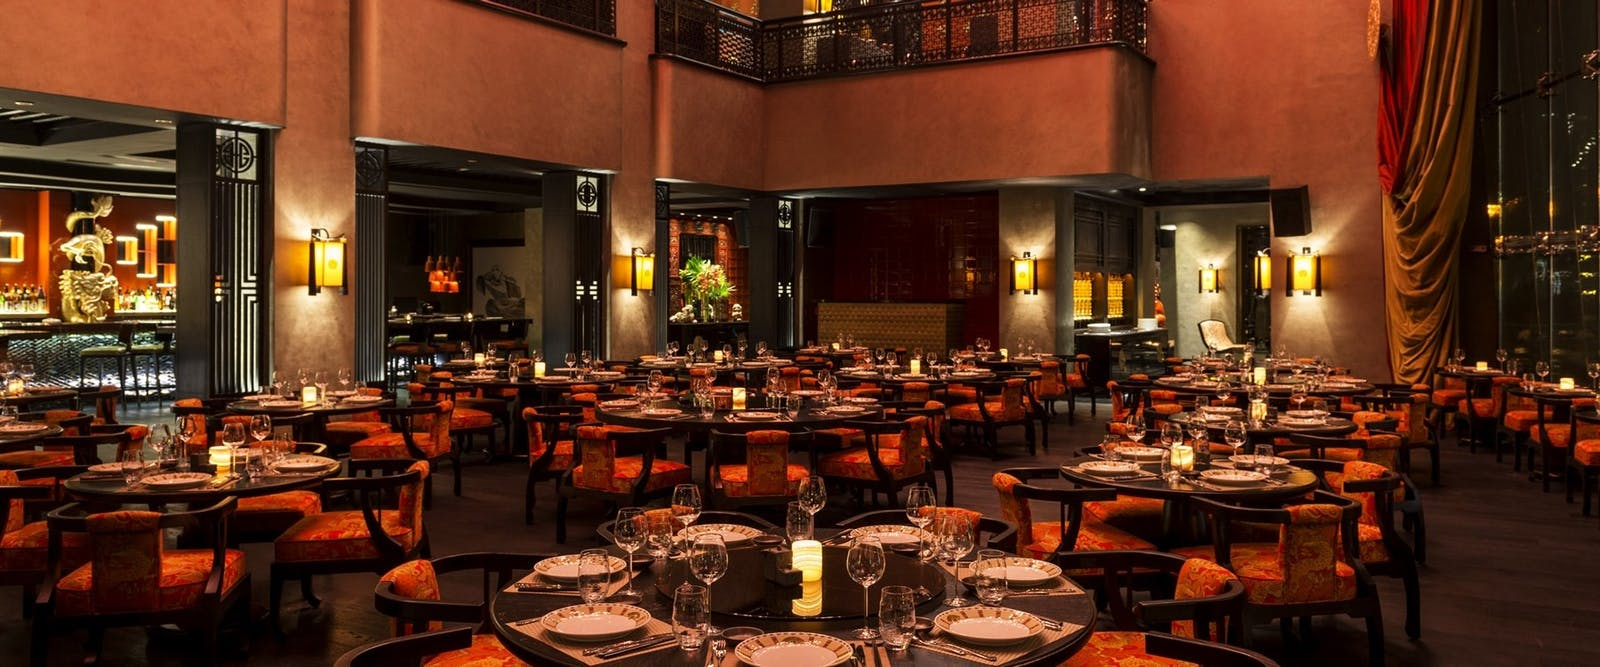 Buddha Bar dining at Grosvenor House, Dubai